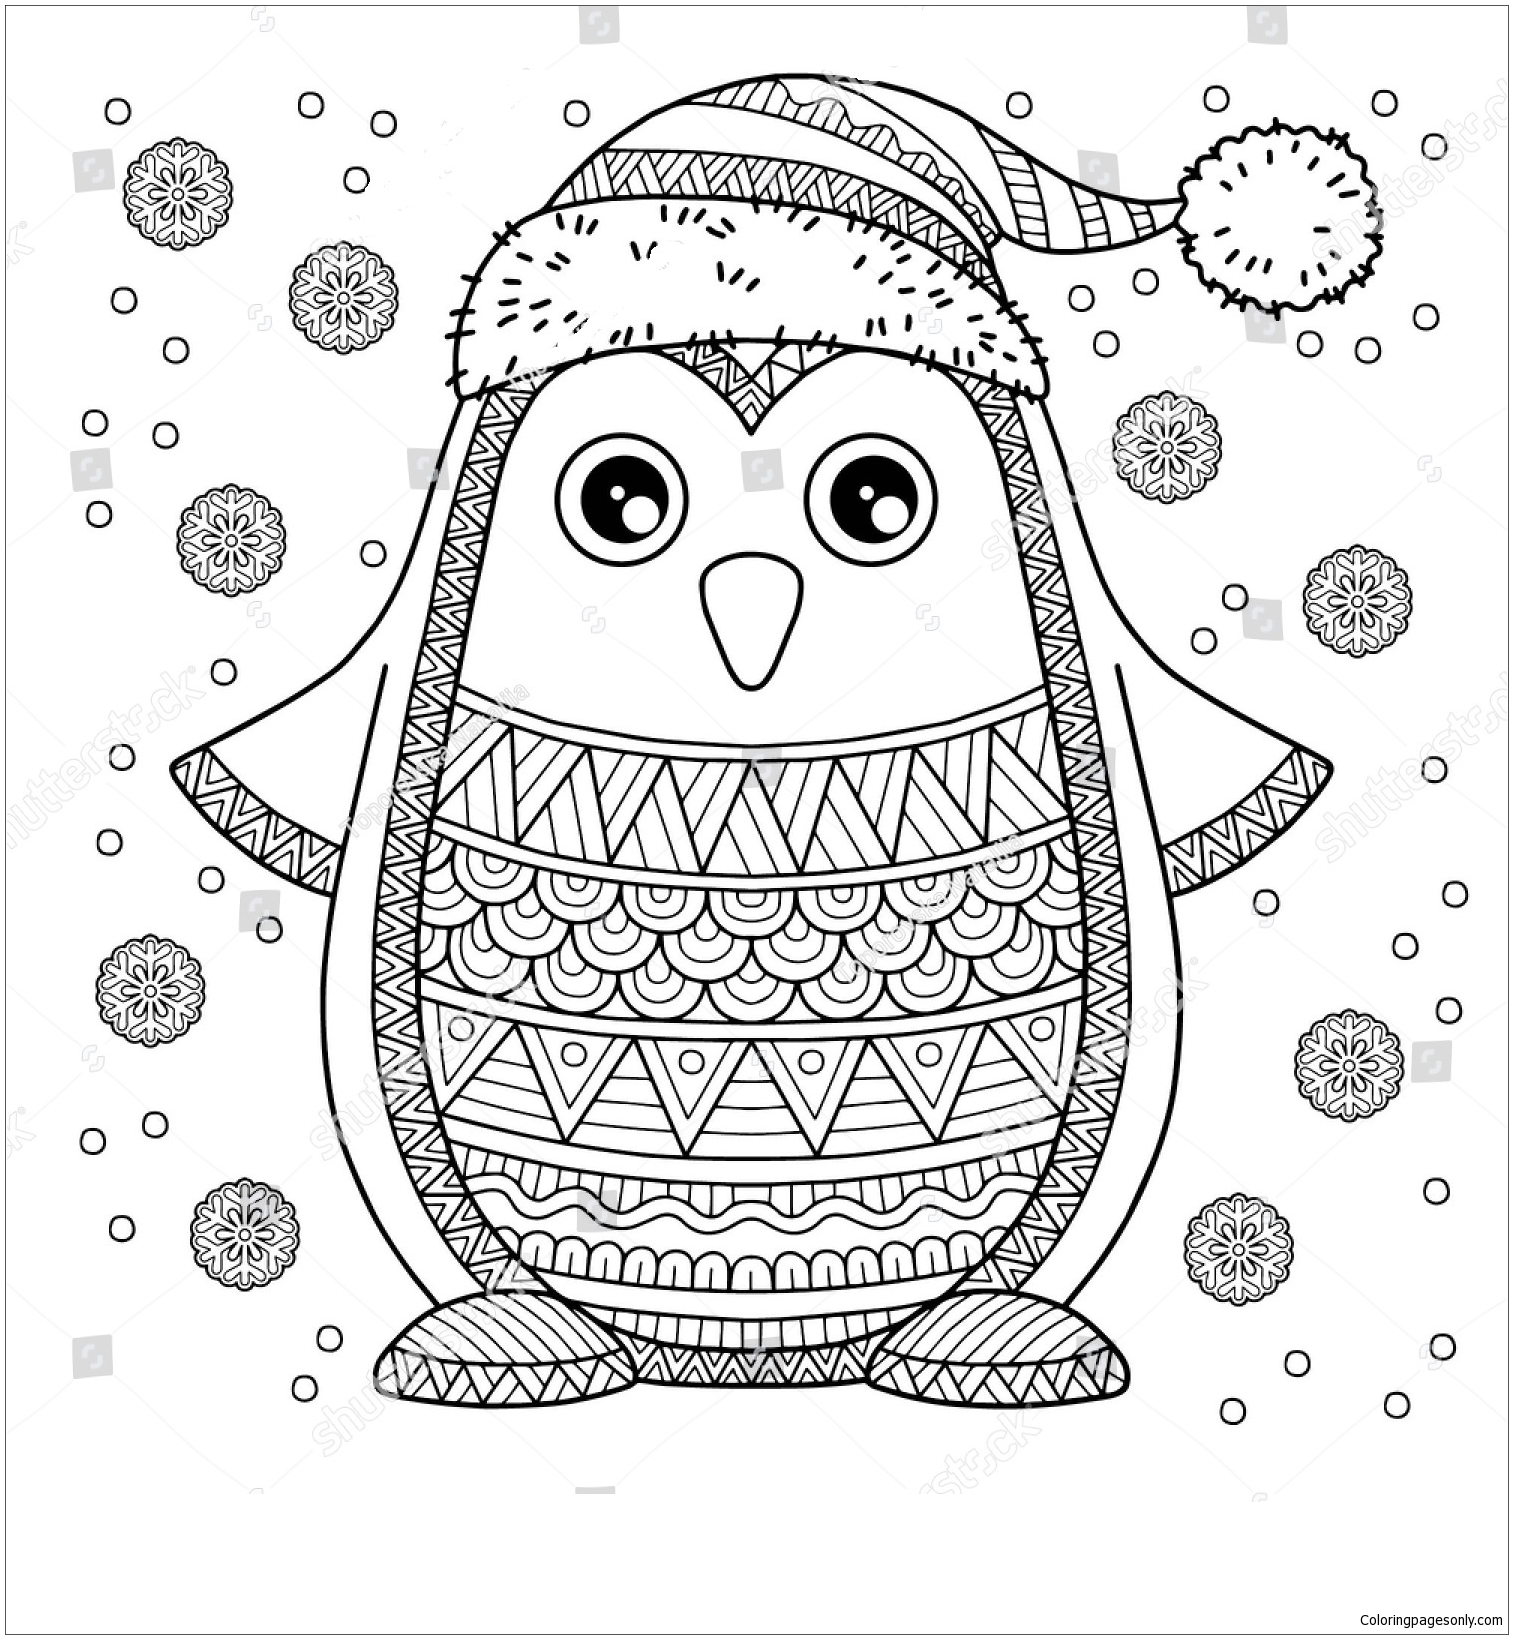 coloring sheets for christmas 5 christmas coloring pages your kids will love sheets coloring for christmas